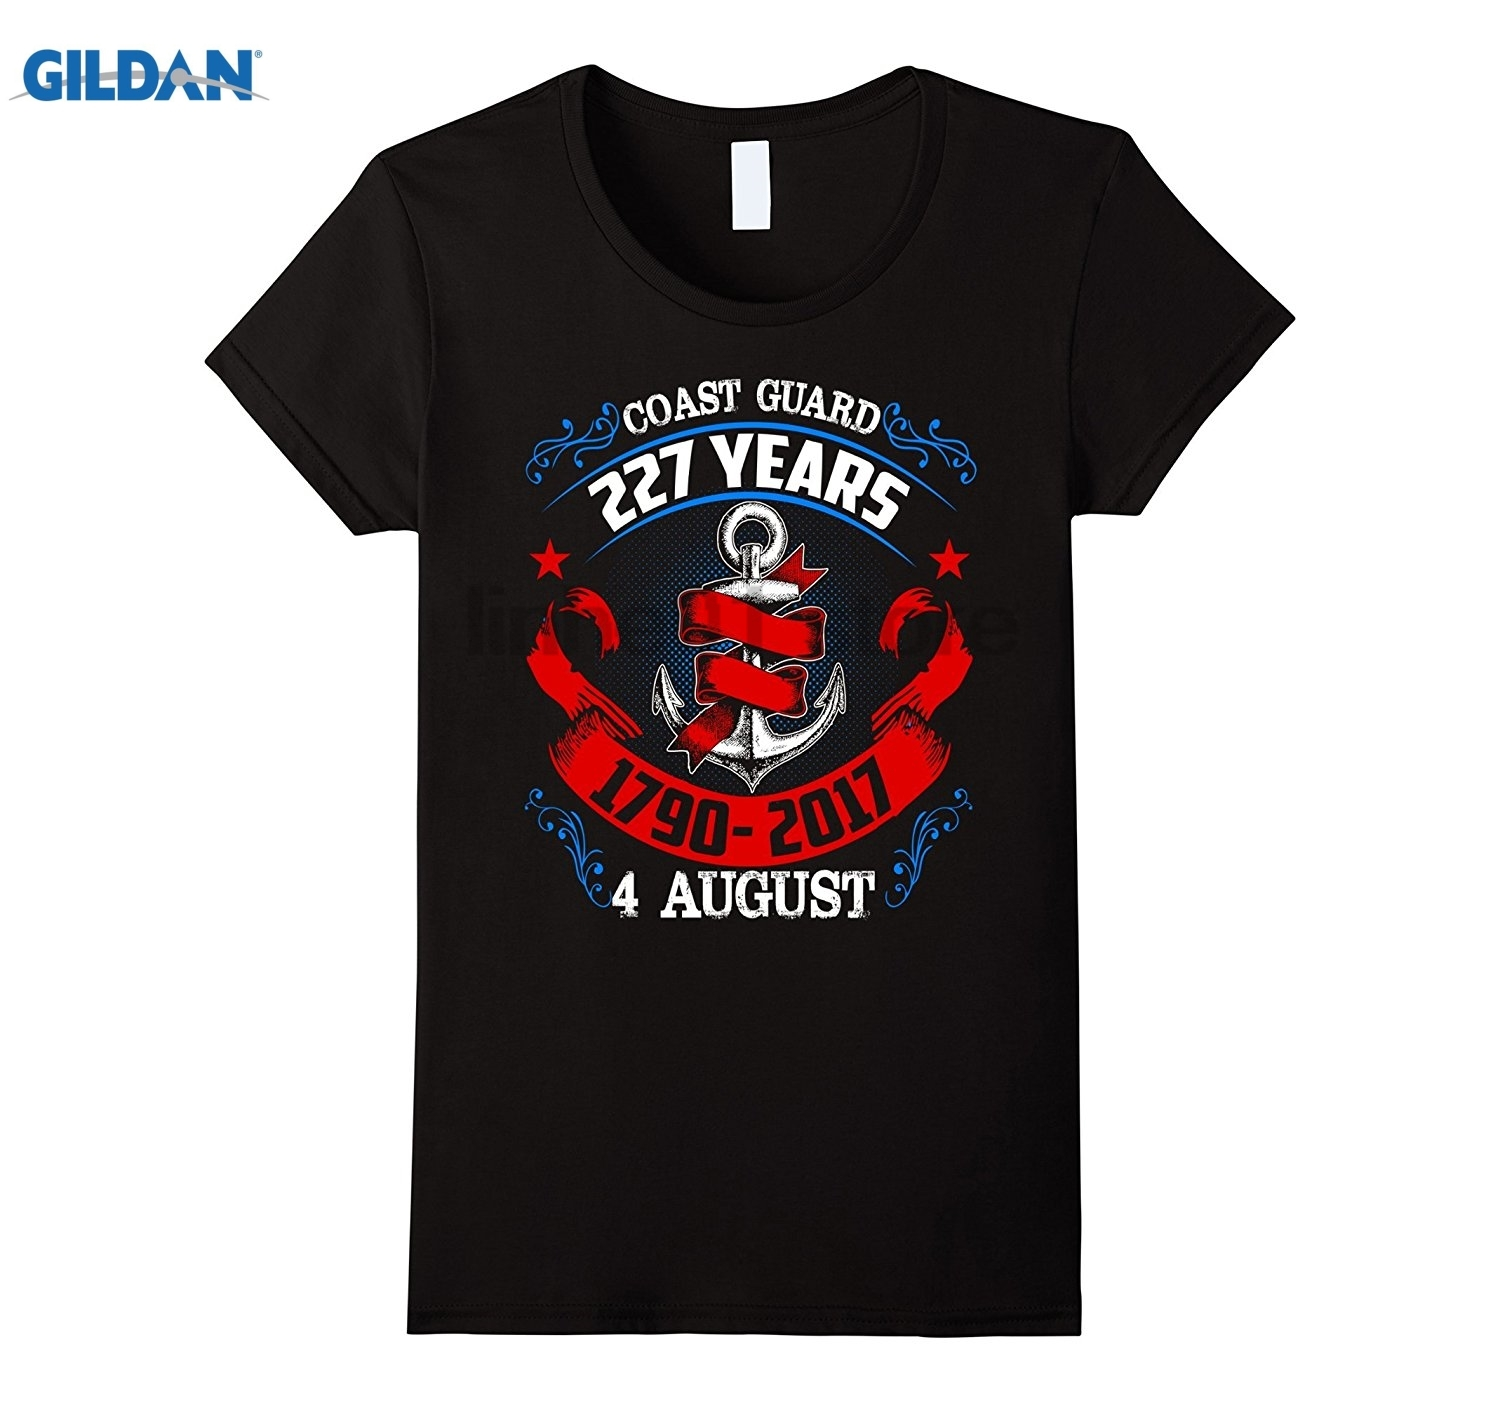 GILDAN Coast Guard Day Shirt 227 Years sunglasses women T-shirt